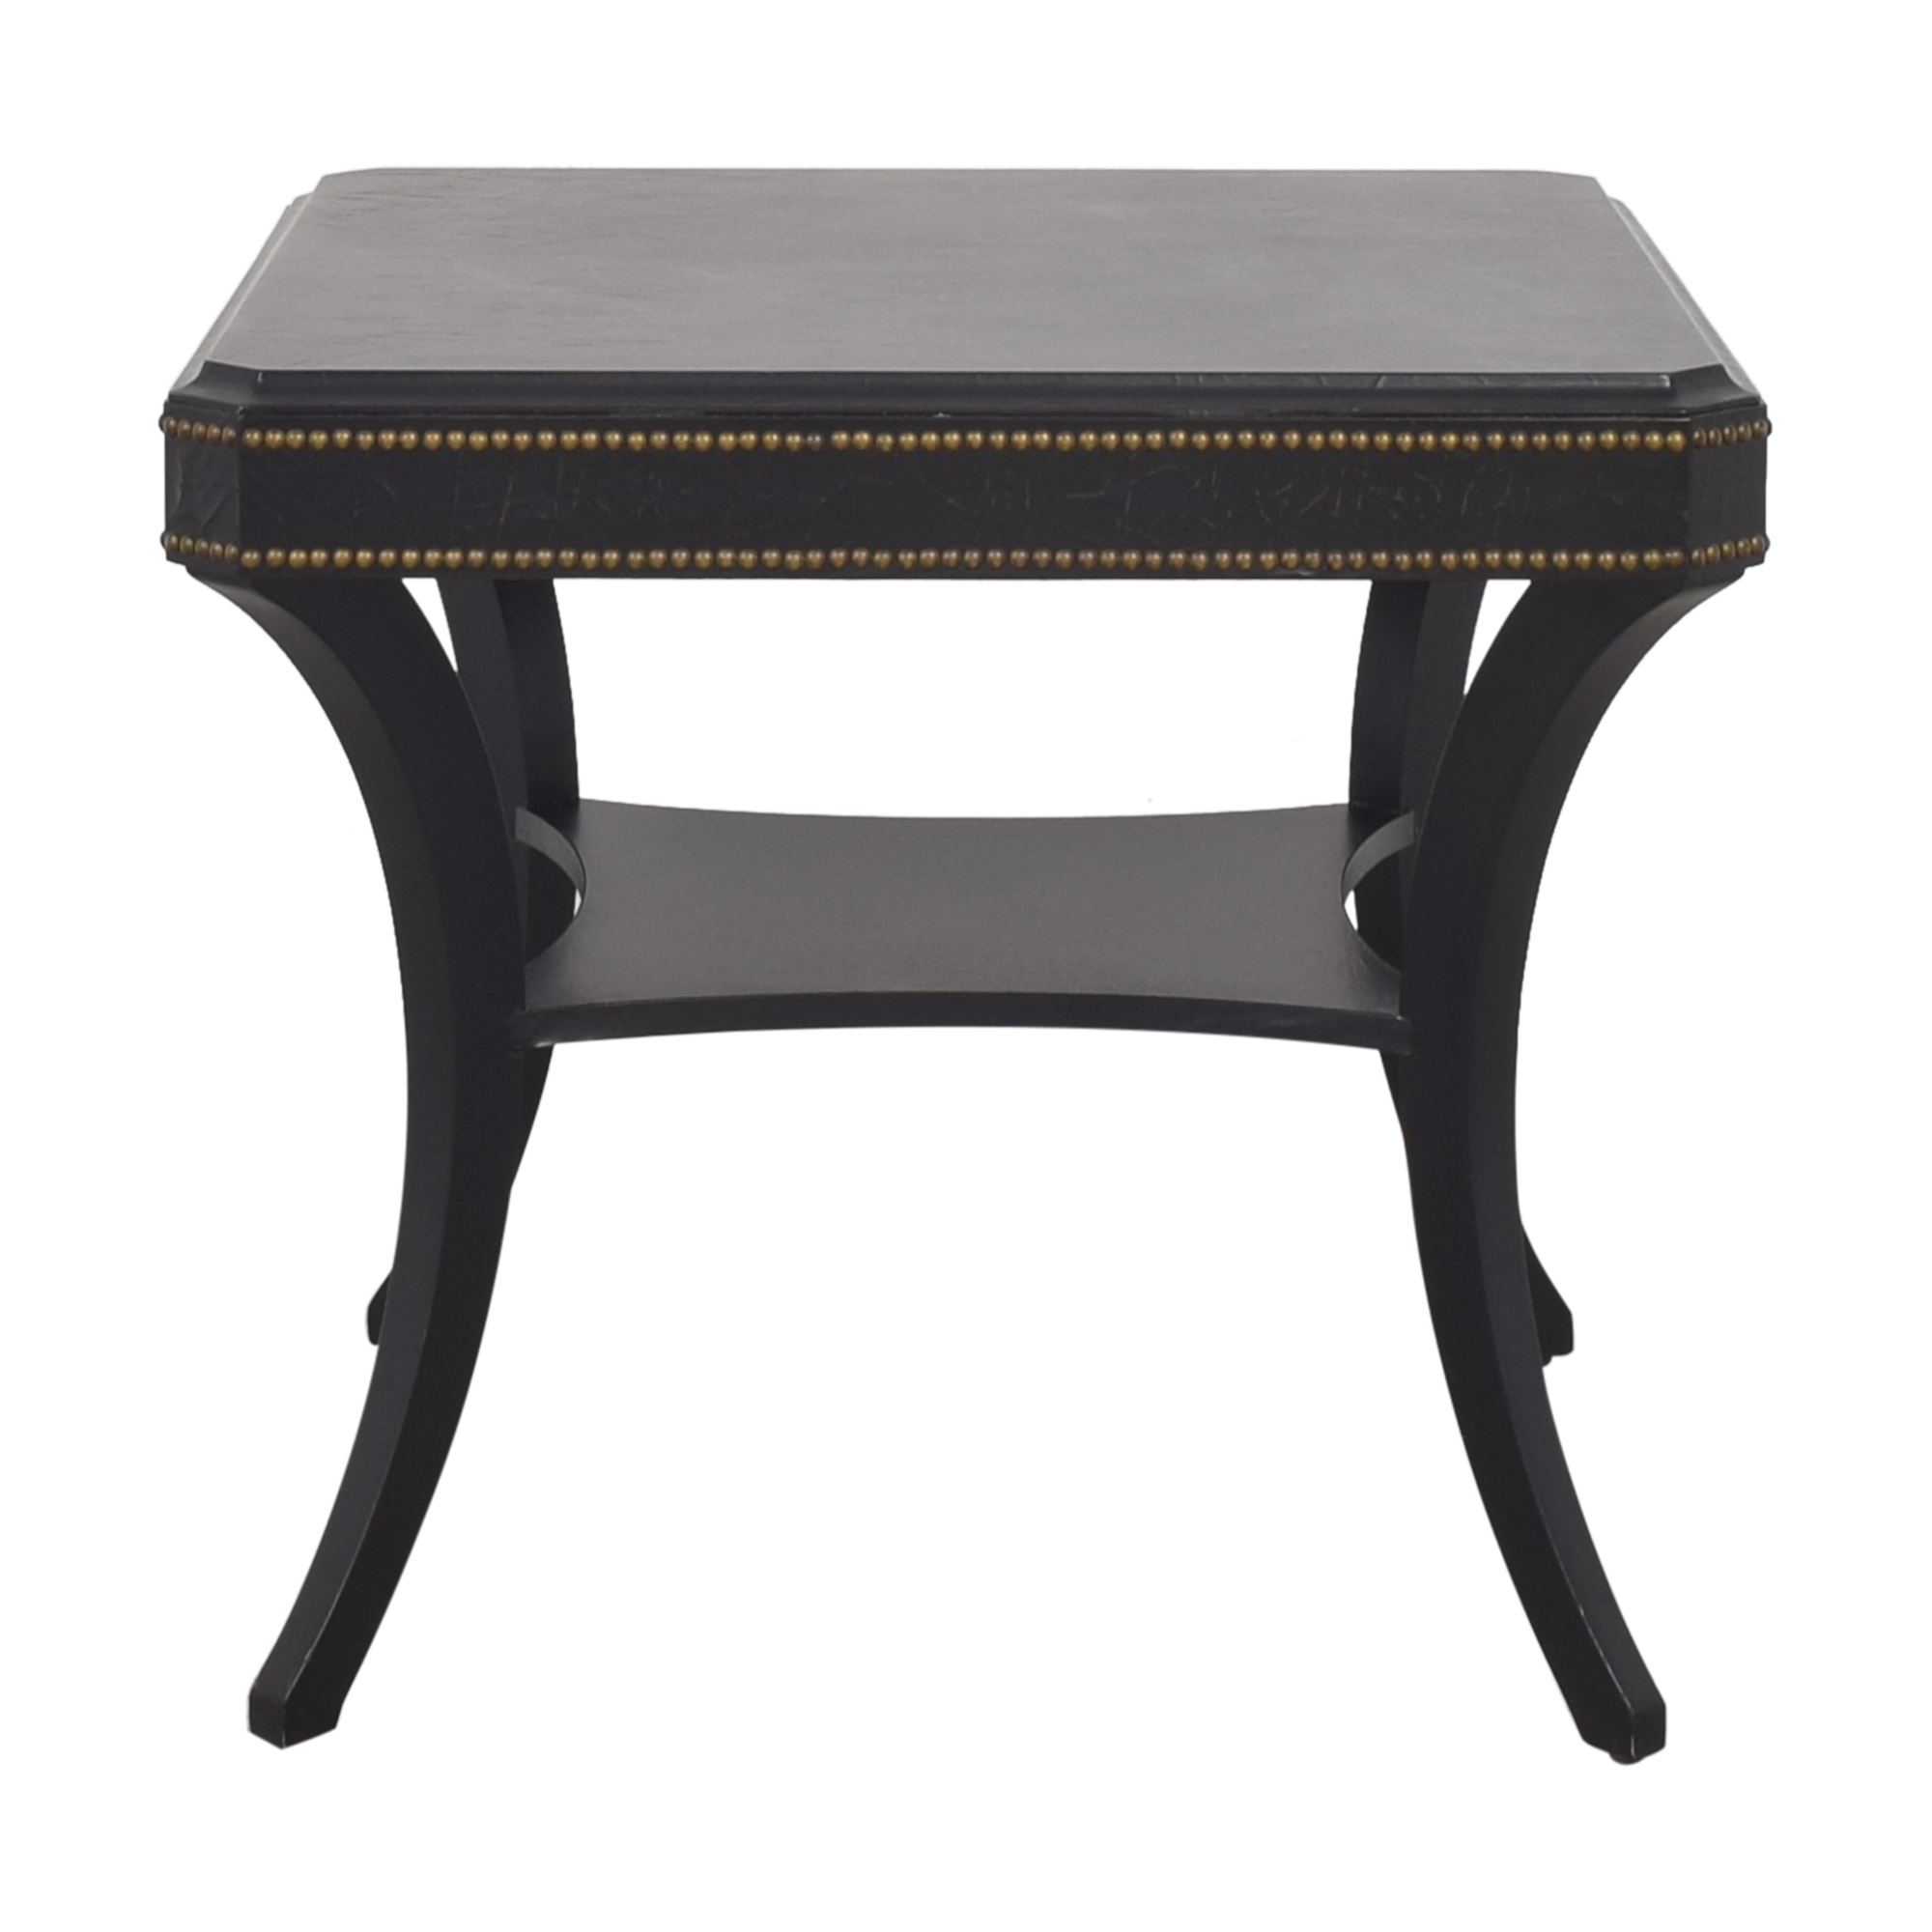 Ethan Allen Ethan Allen Everett End Table for sale